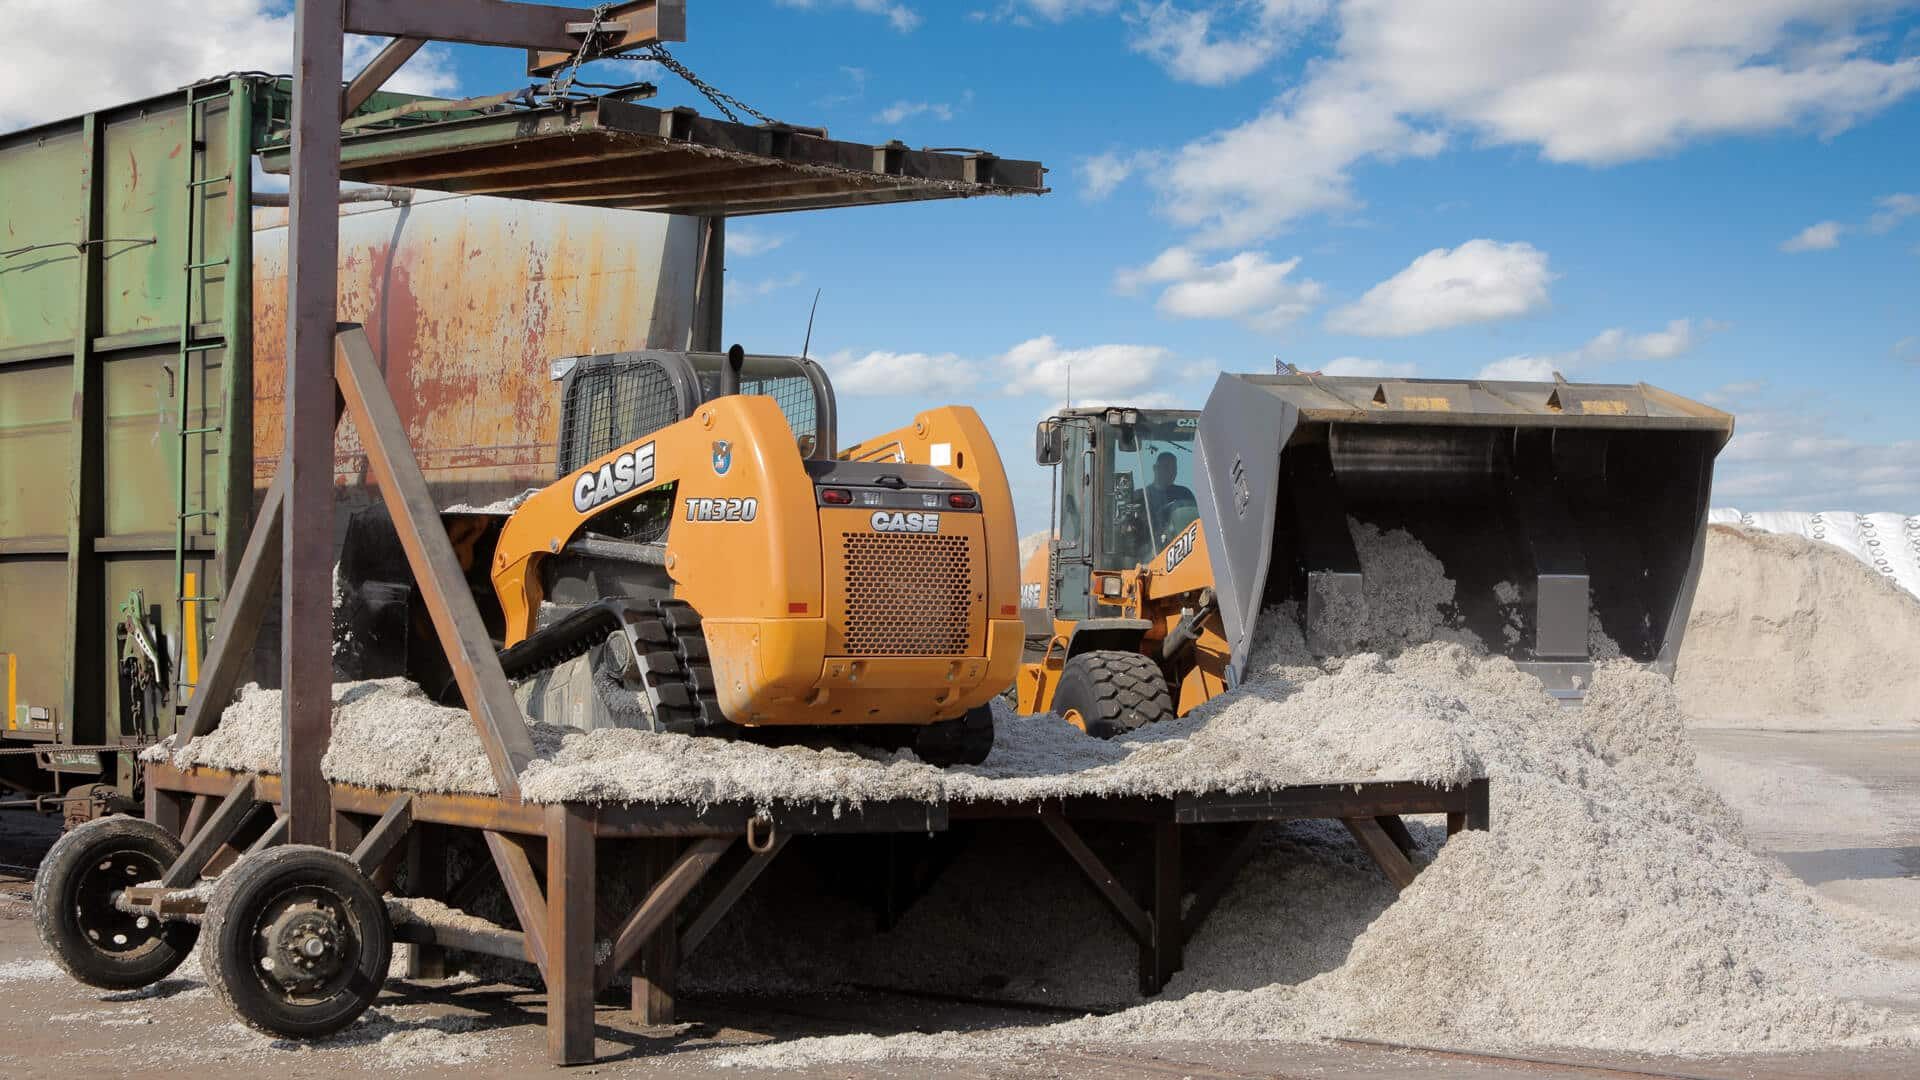 CASE TR320 Compact Track Loader | CASE Construction Equipment